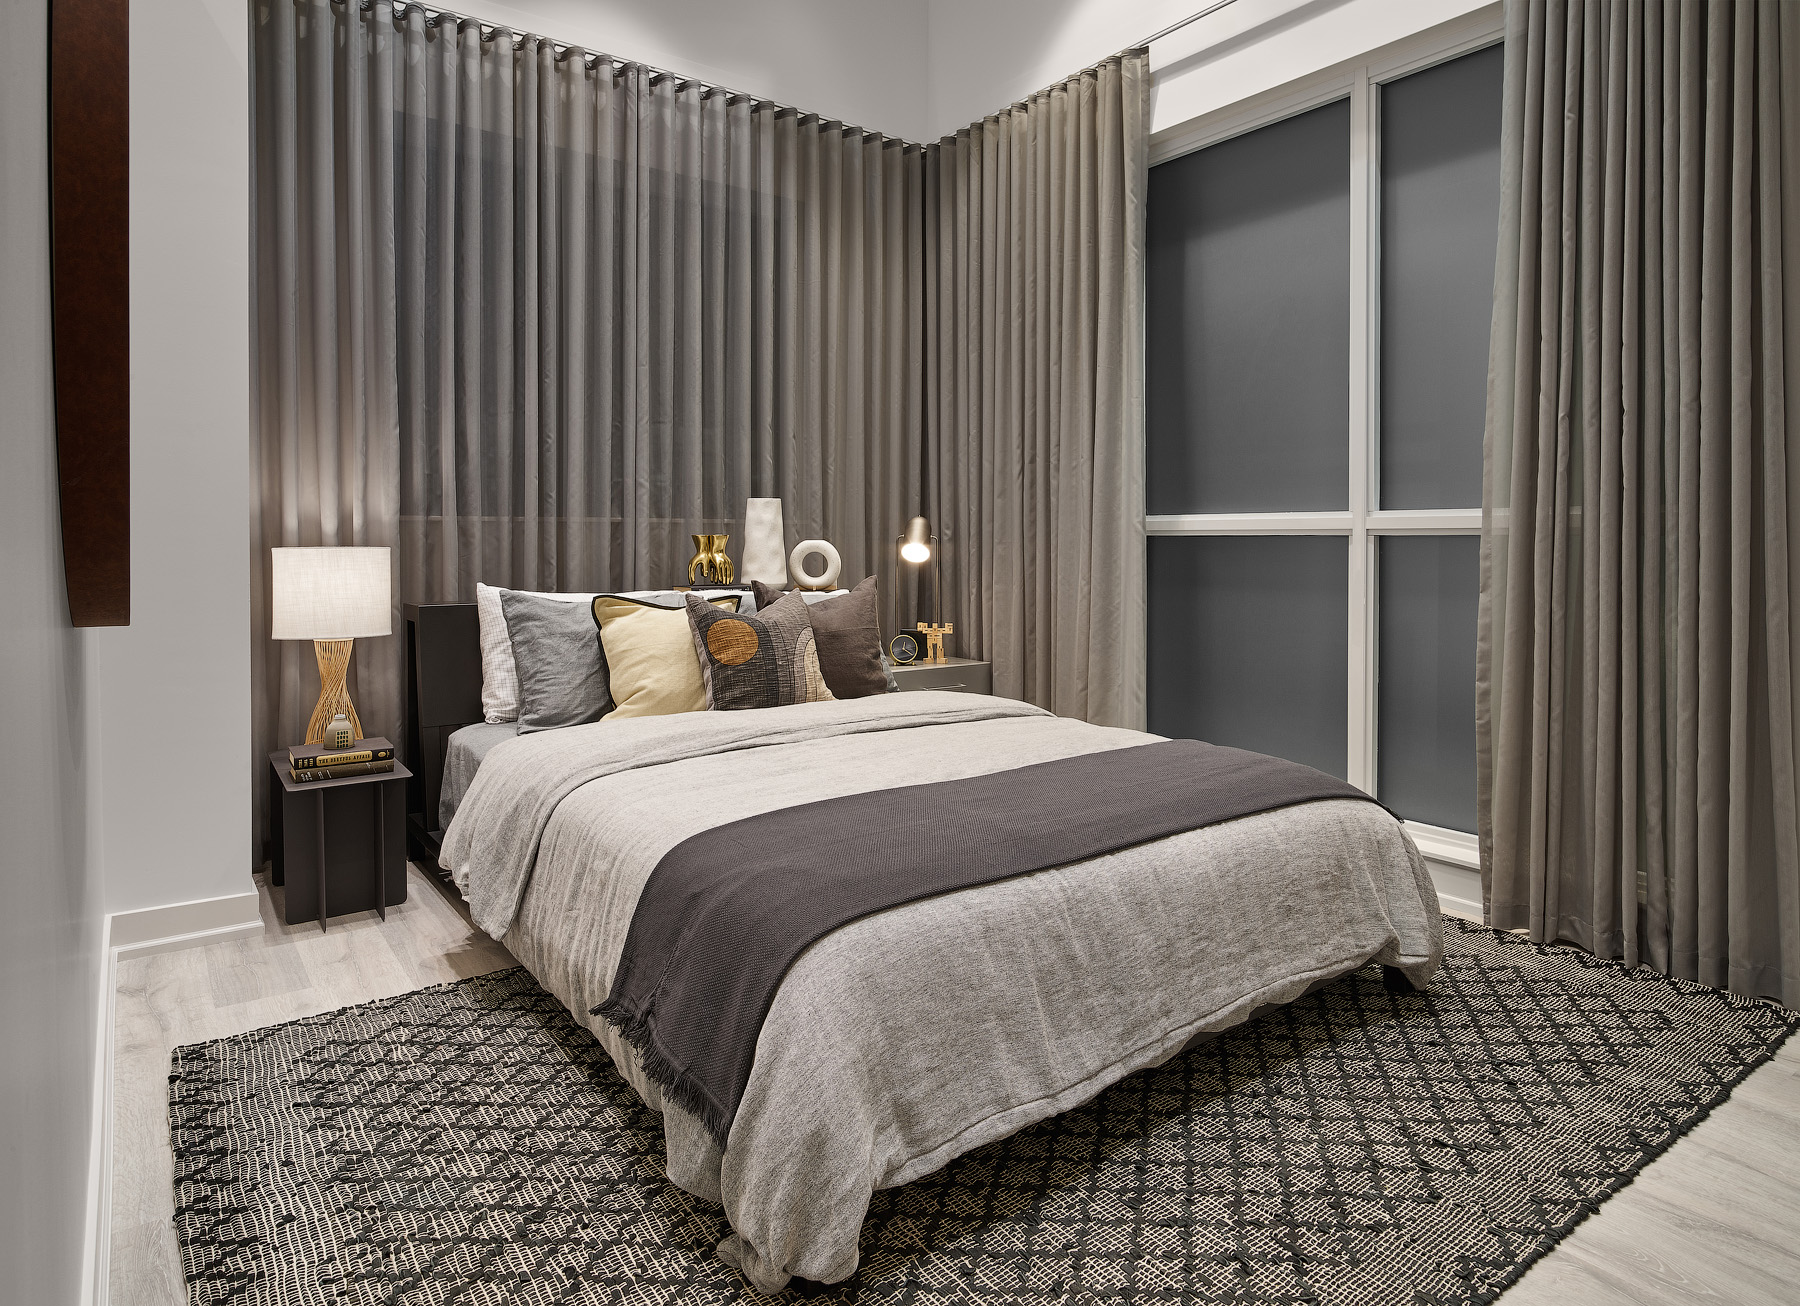 Empire Phoenix bedroom with large windows, grey curtains, and layered linen bedding